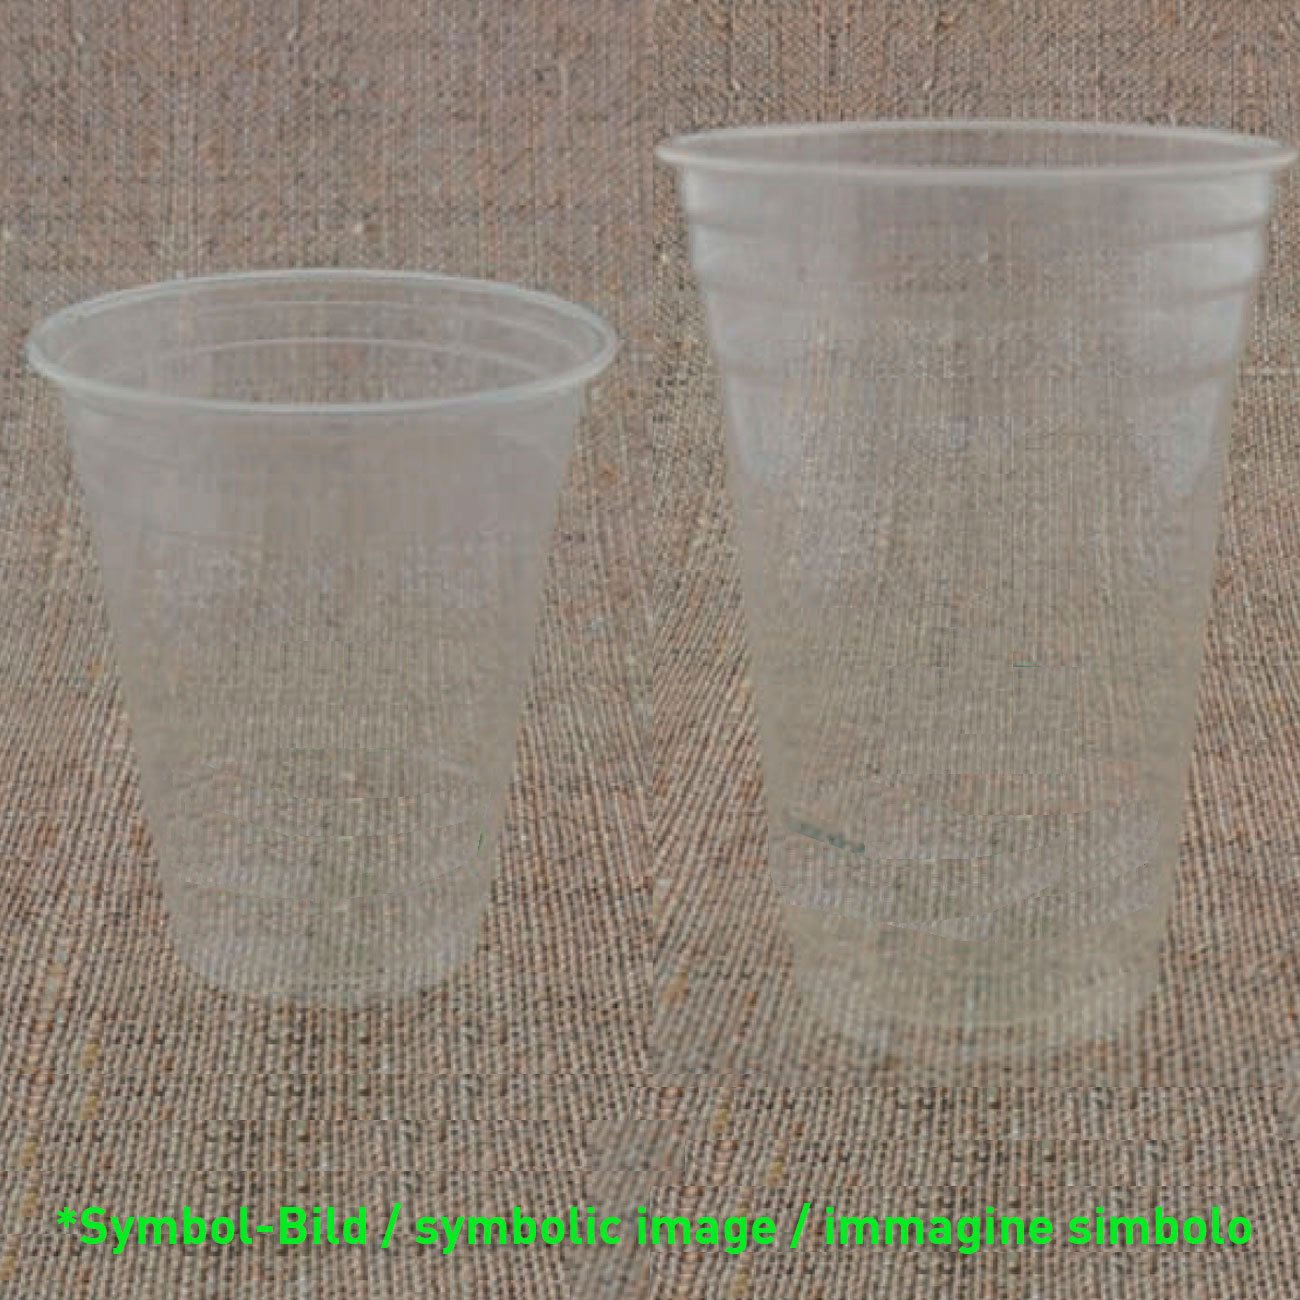 Bio clear cup PLA 300 - 350 ccm - box 1.000 pieces - Plastic drinking cup Clear Cup PLA